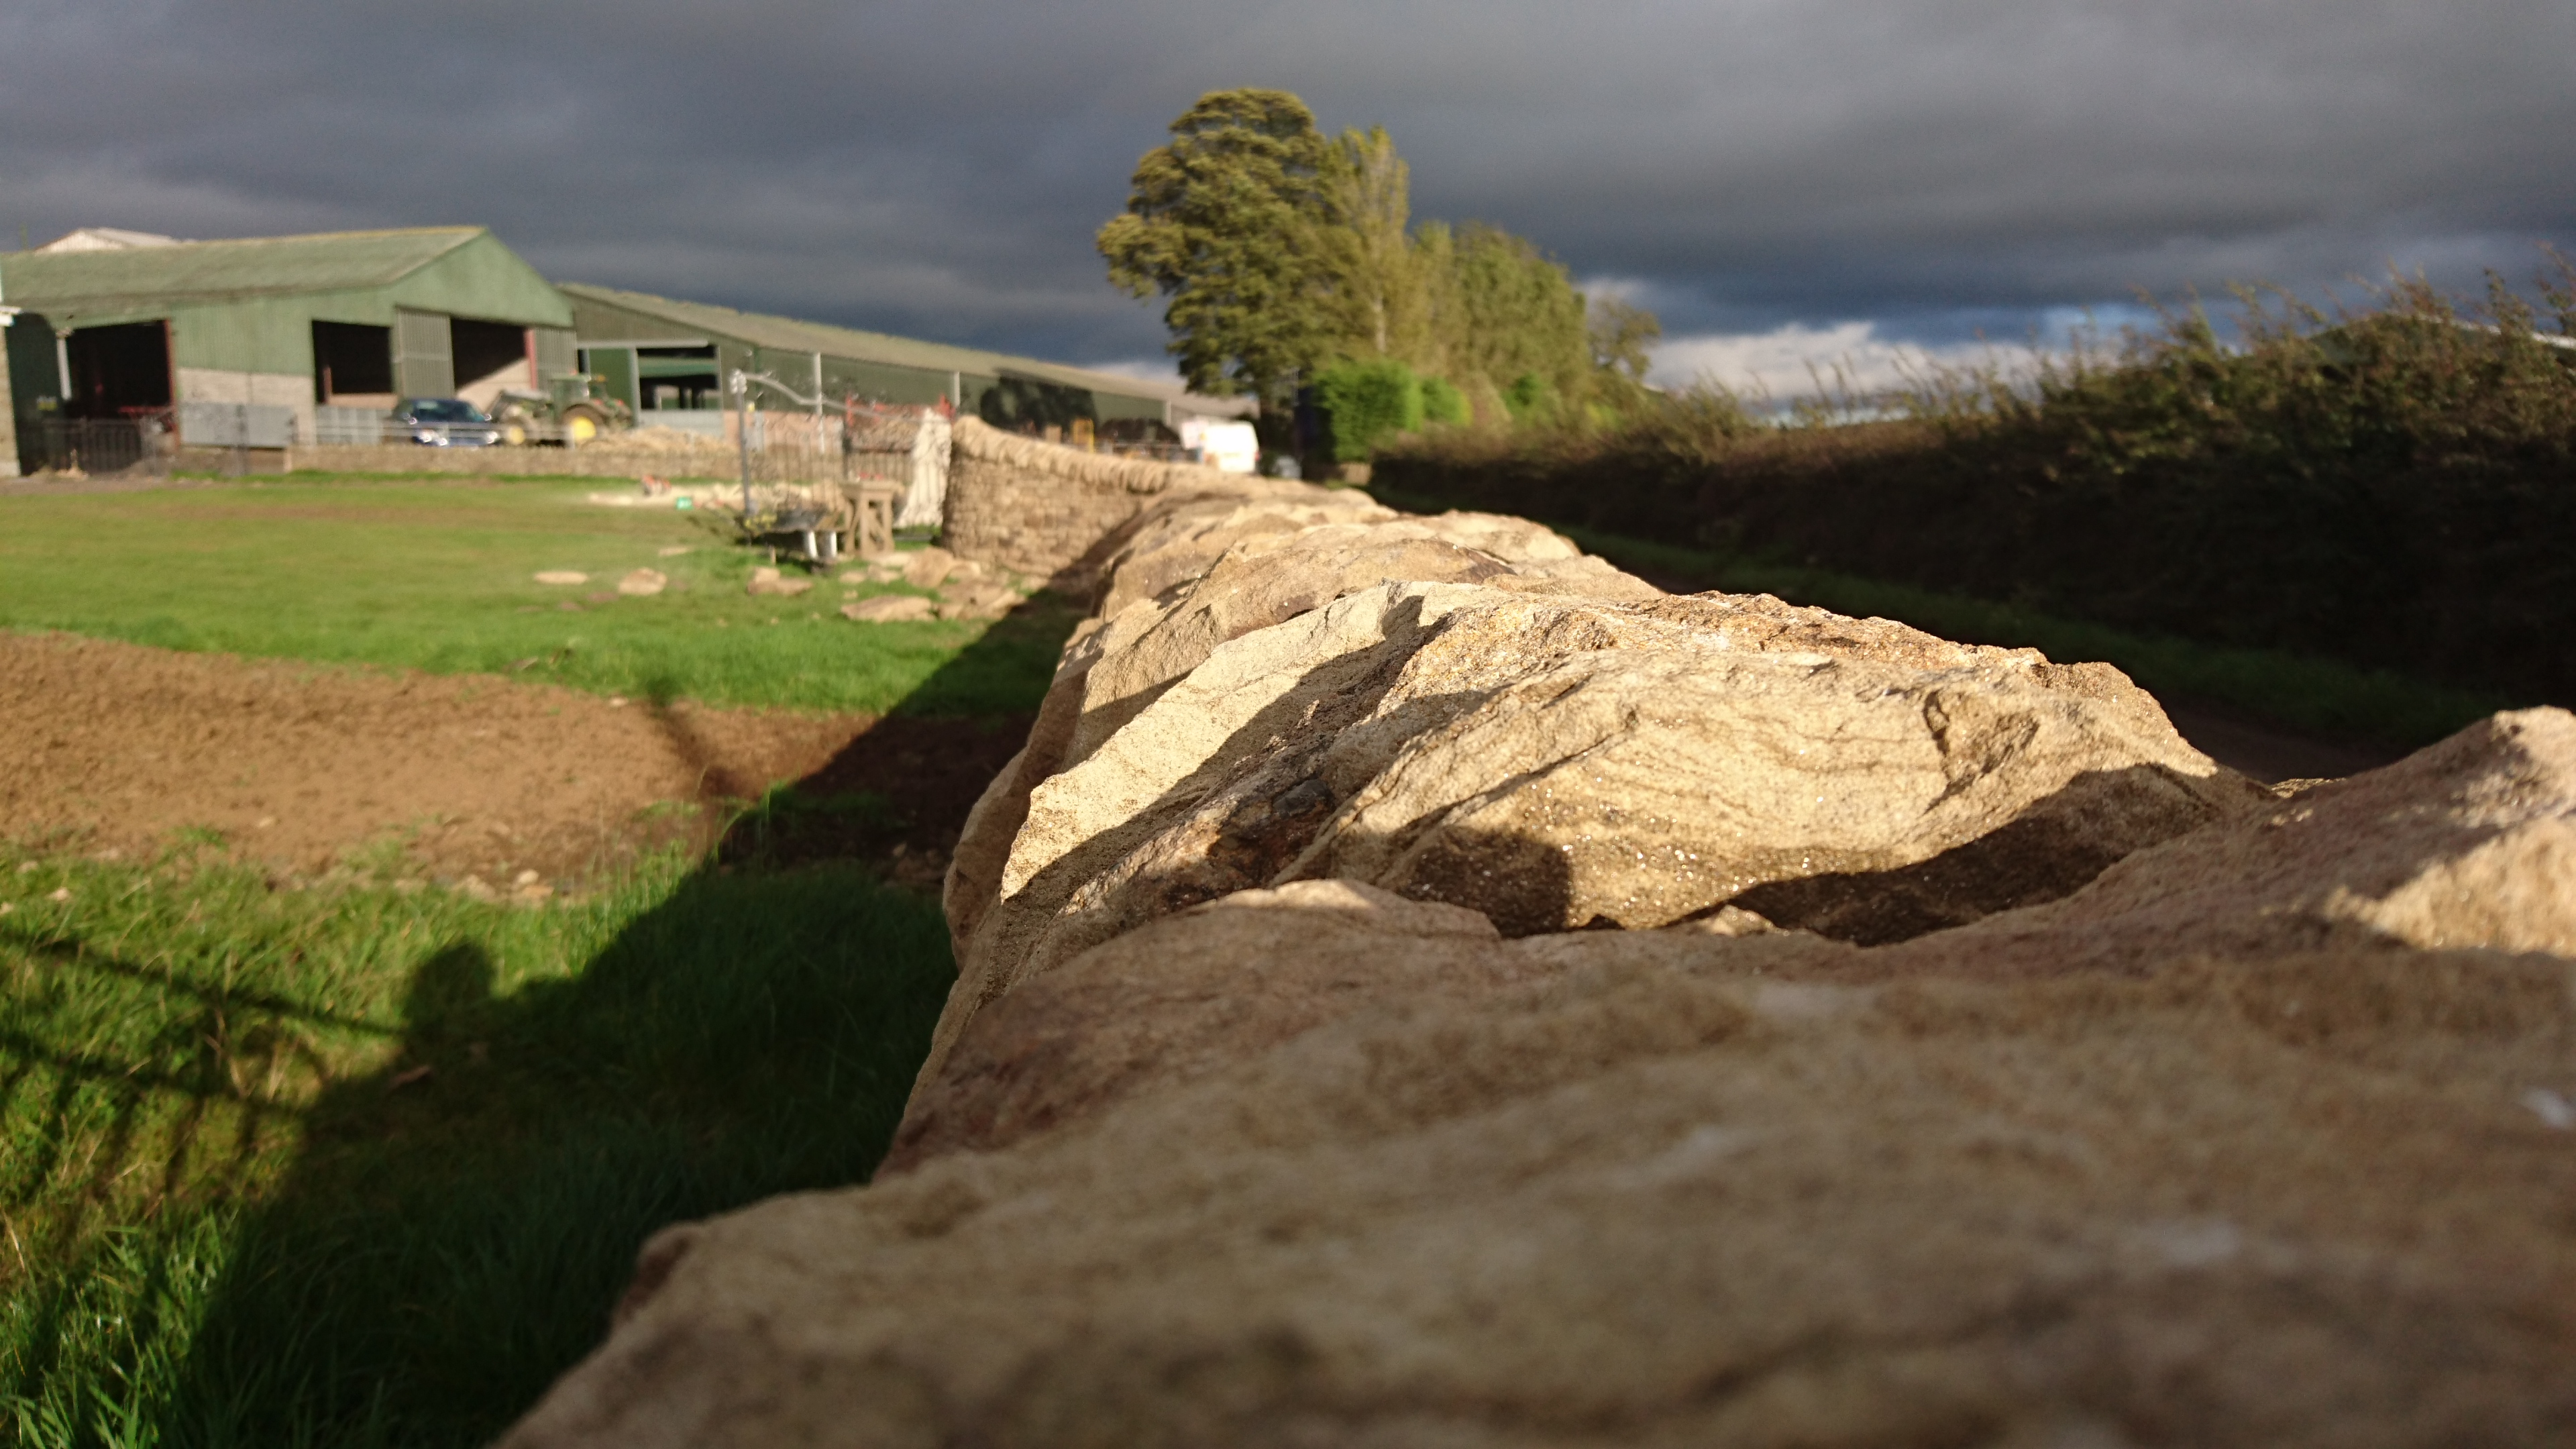 A view along the top of a dry stone wall